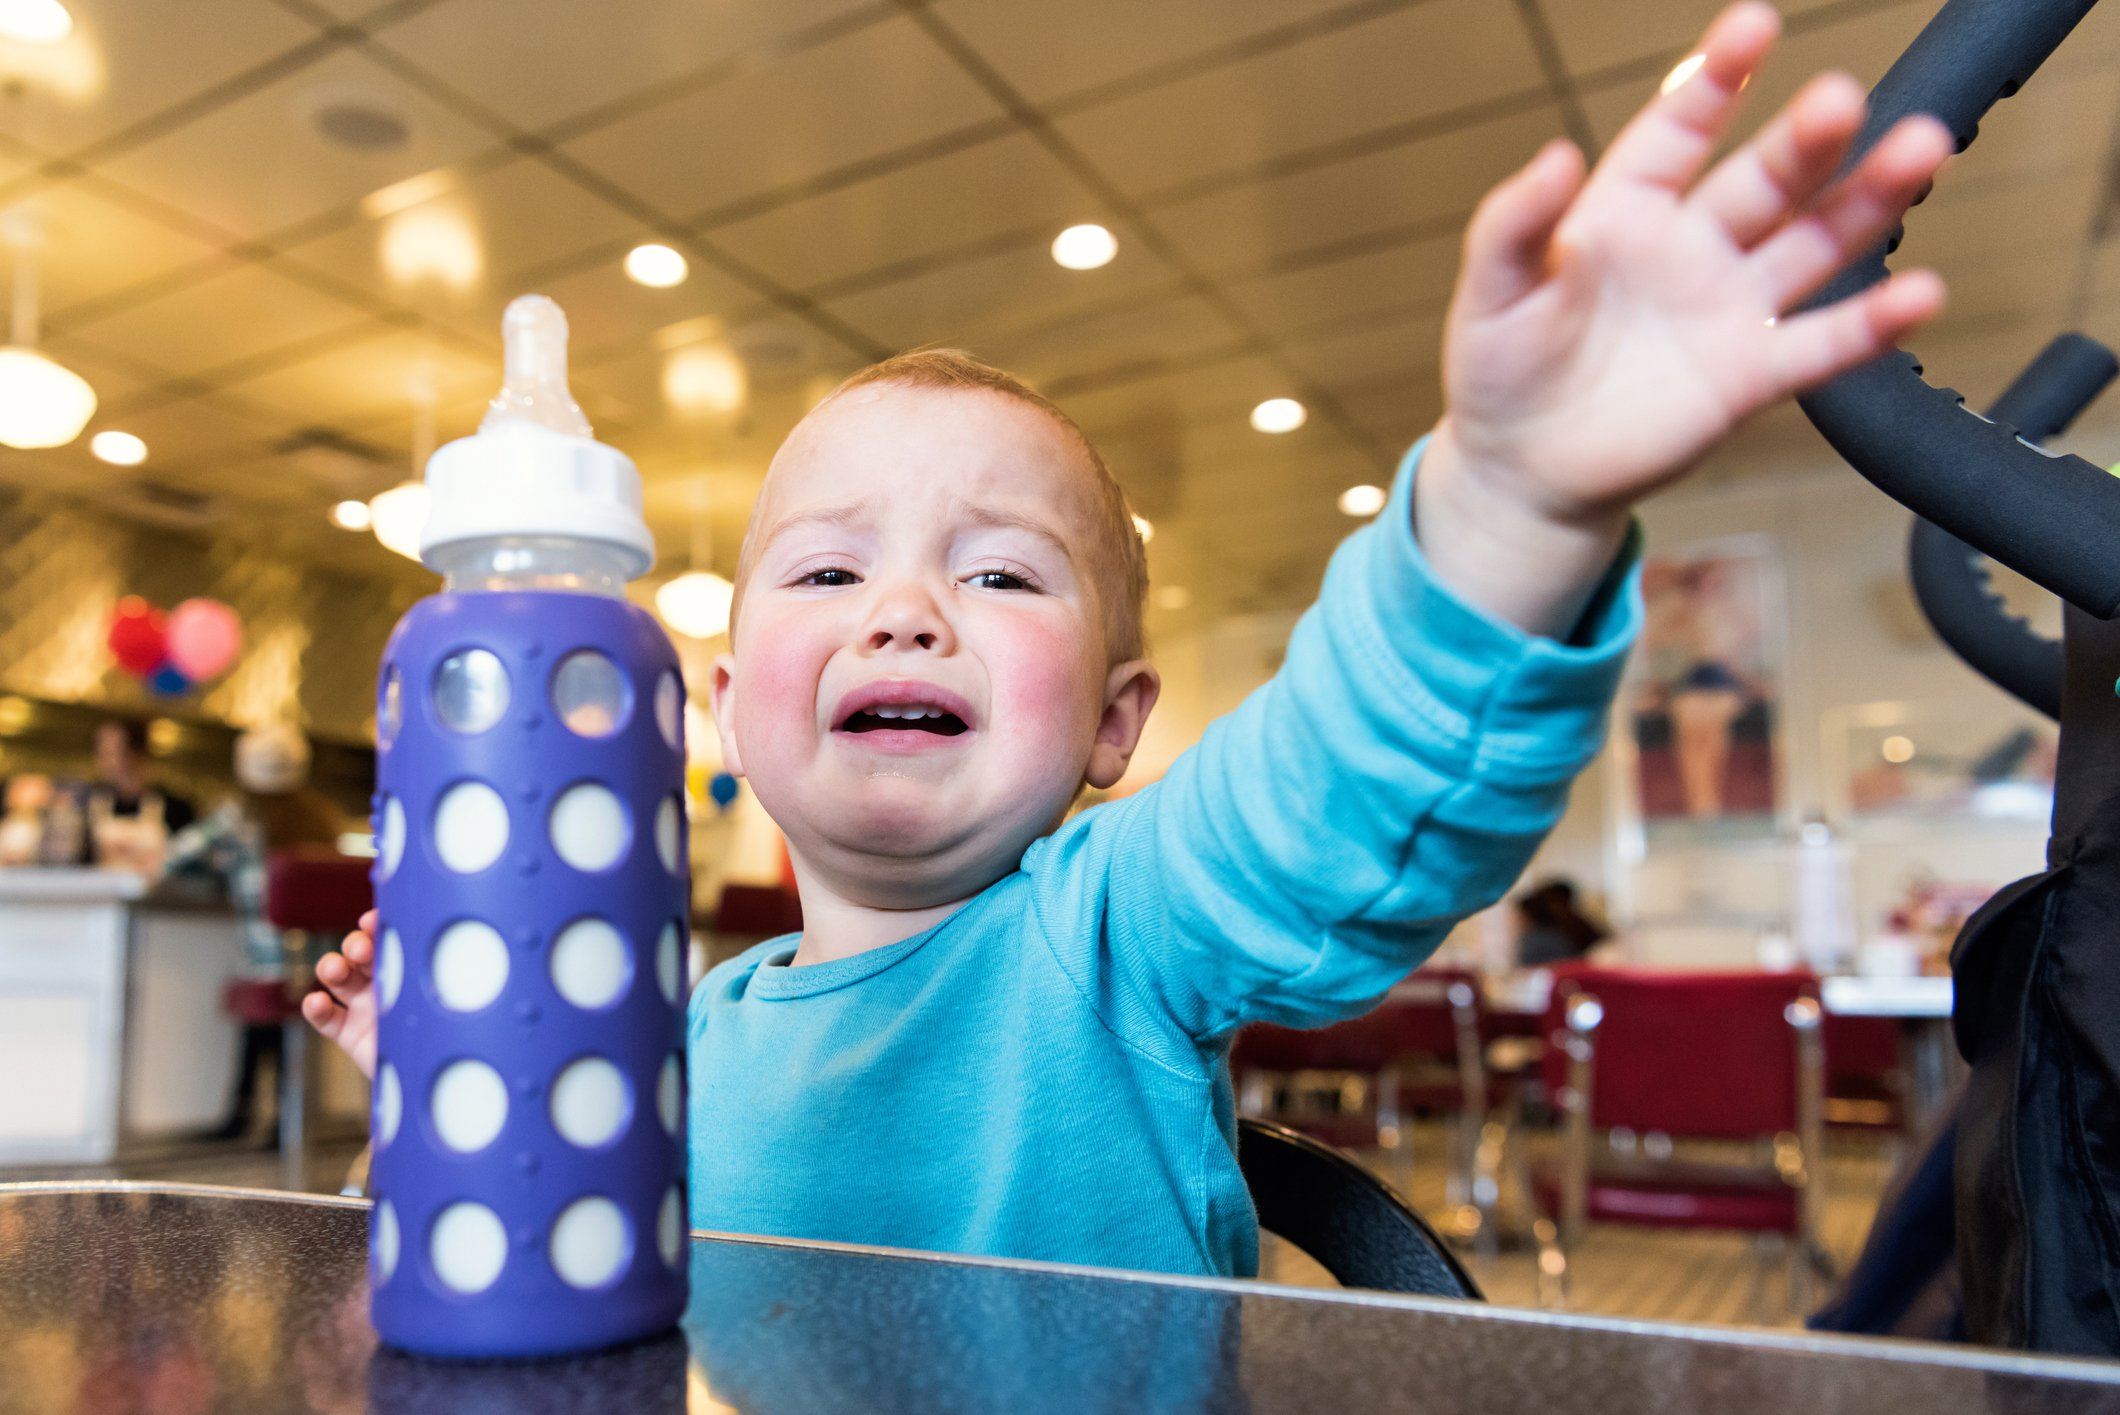 Baby boy cries uncontrollably in a restaurant | Photo: Getty Images